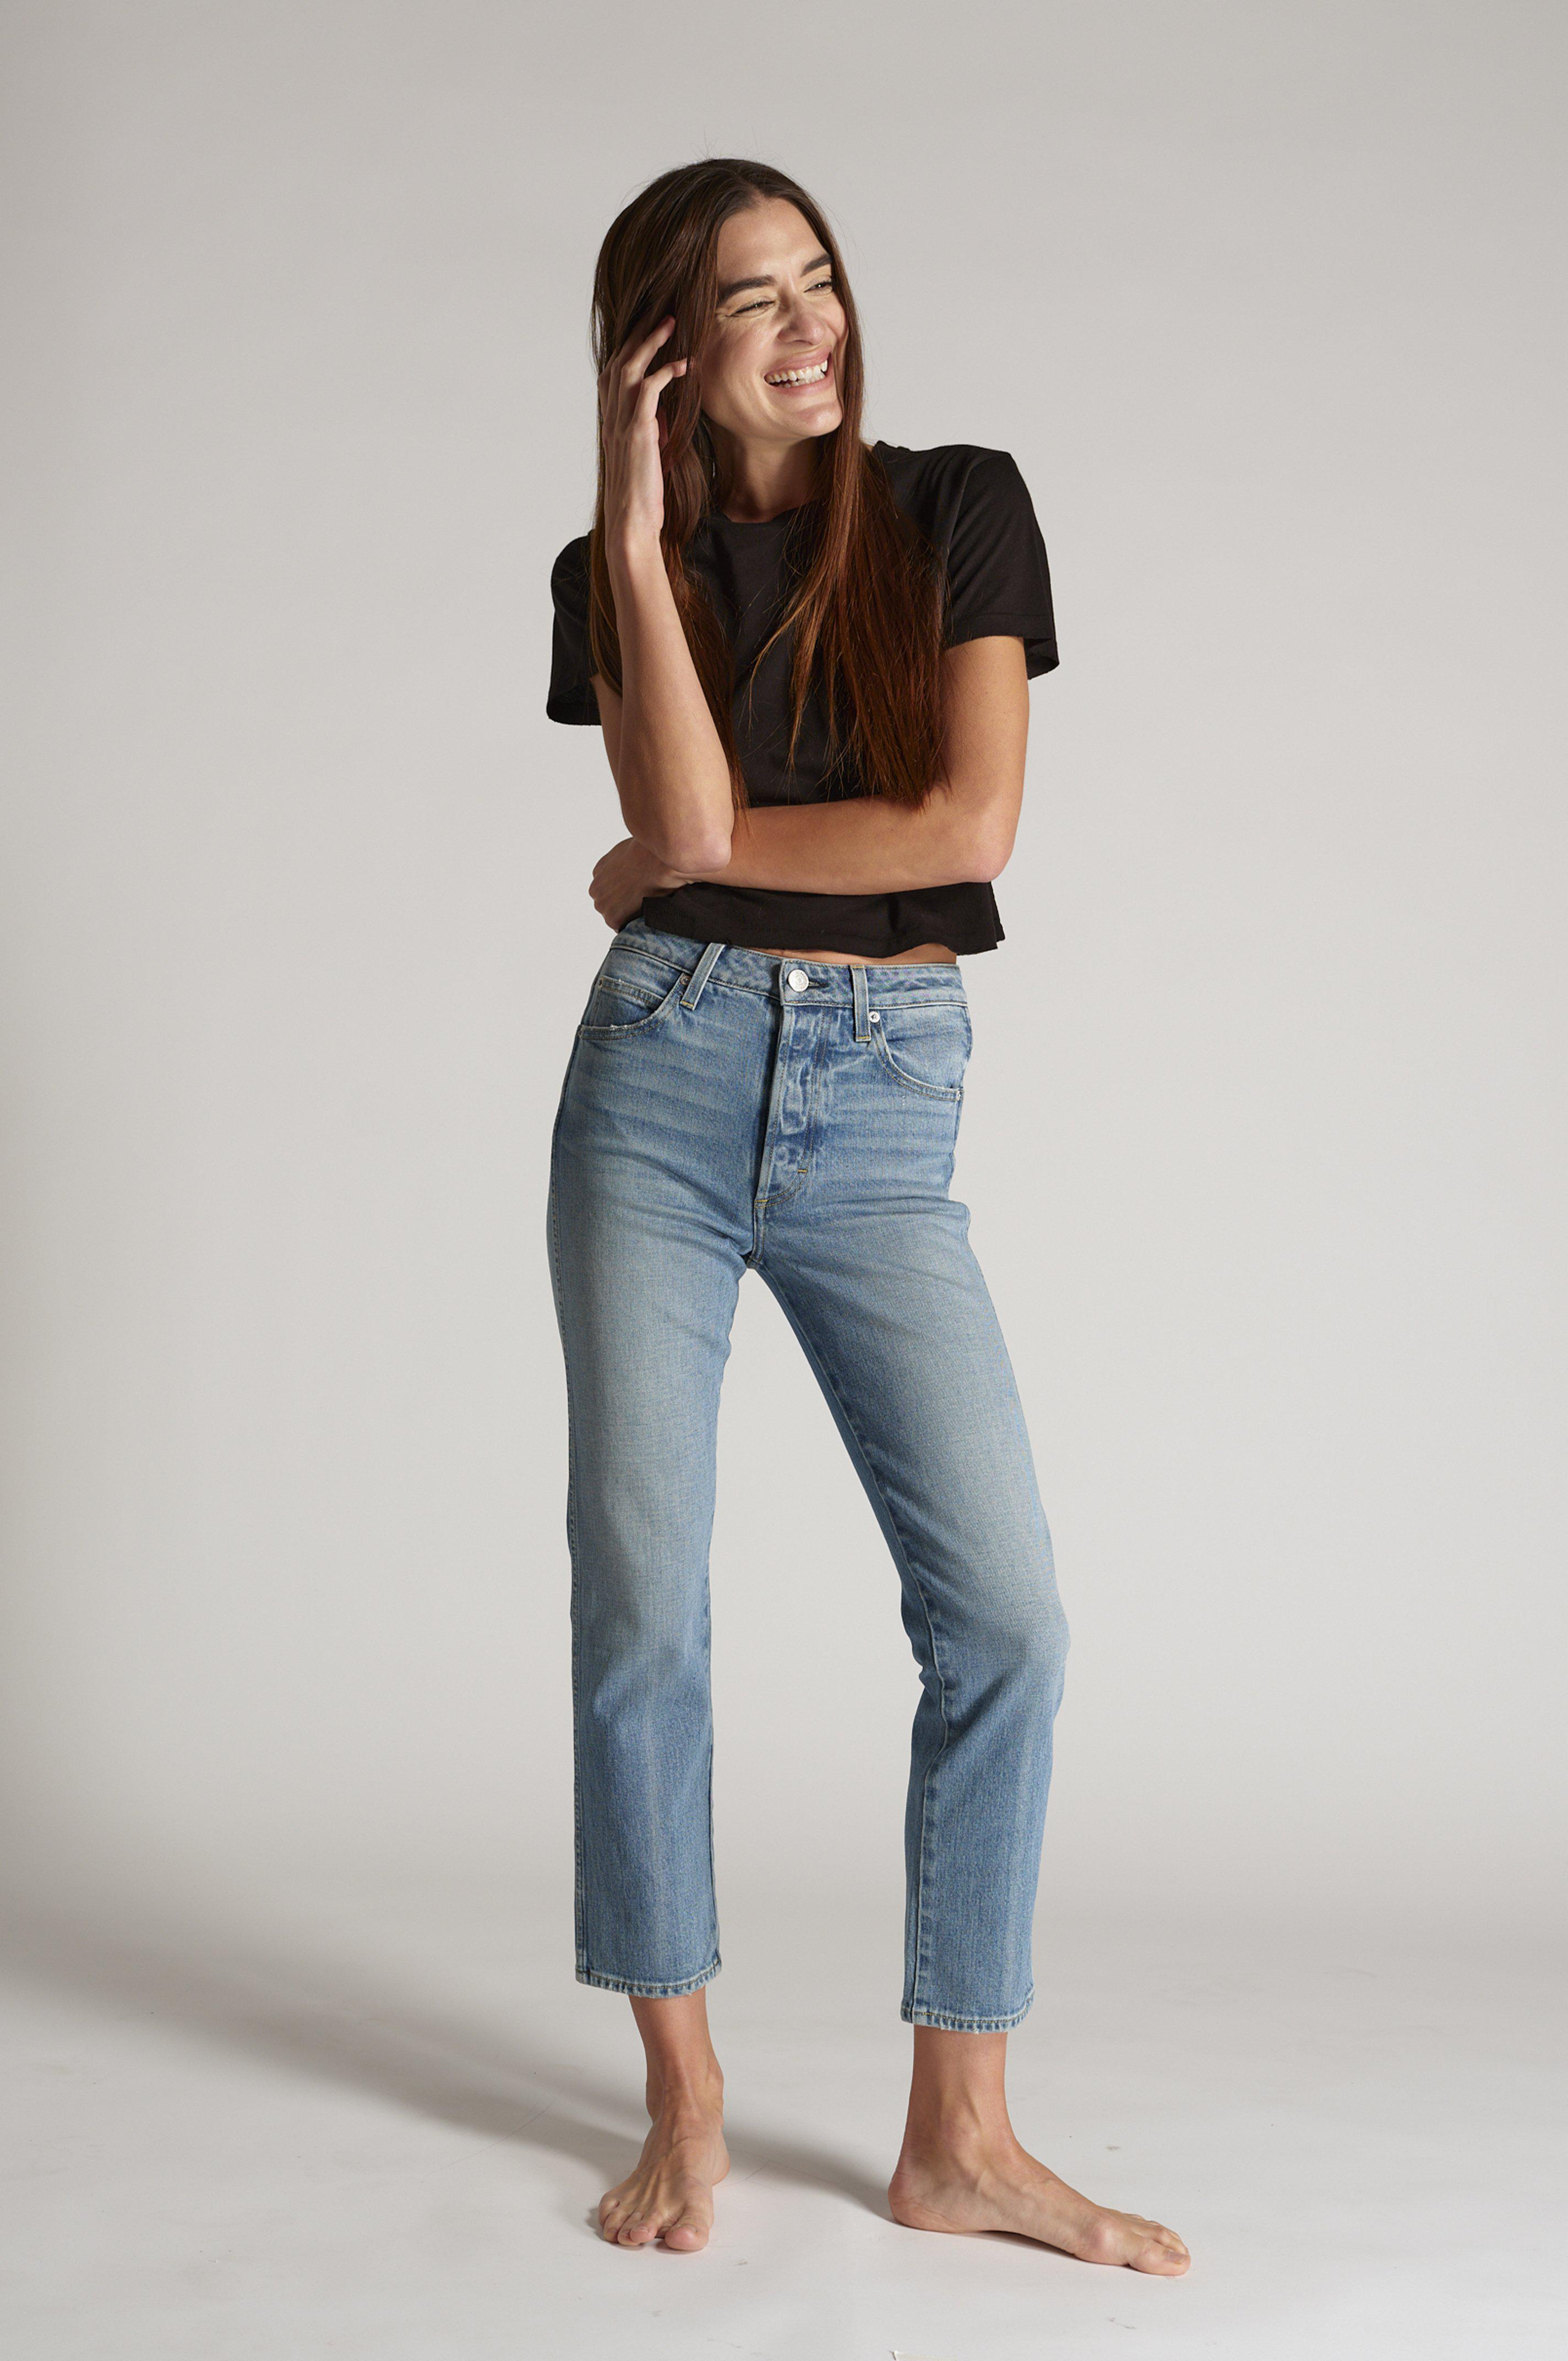 CHLOE CROP FOREVER YOUNG 1